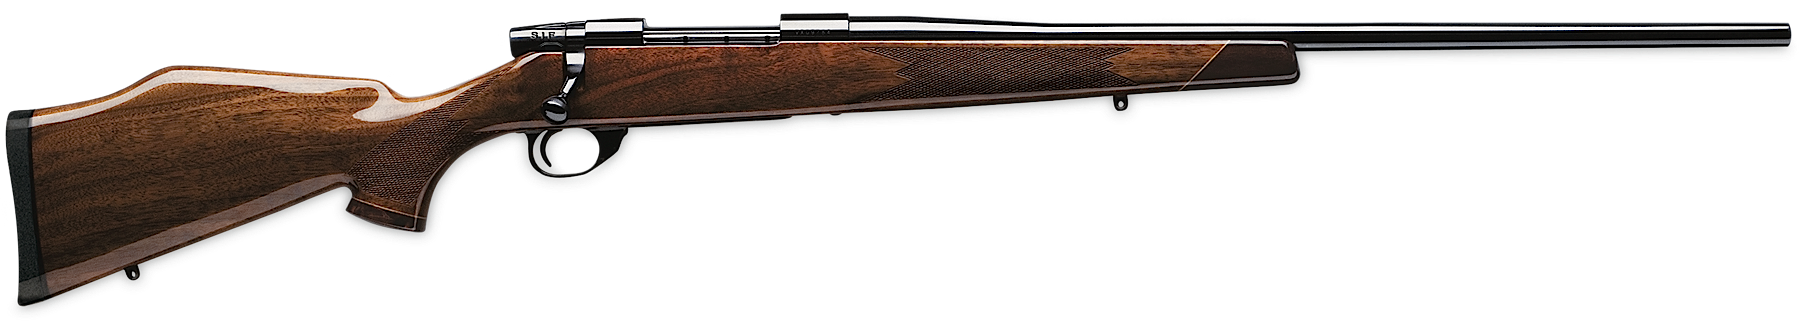 Weatherby Vanguard Deluxe 270 Win 24